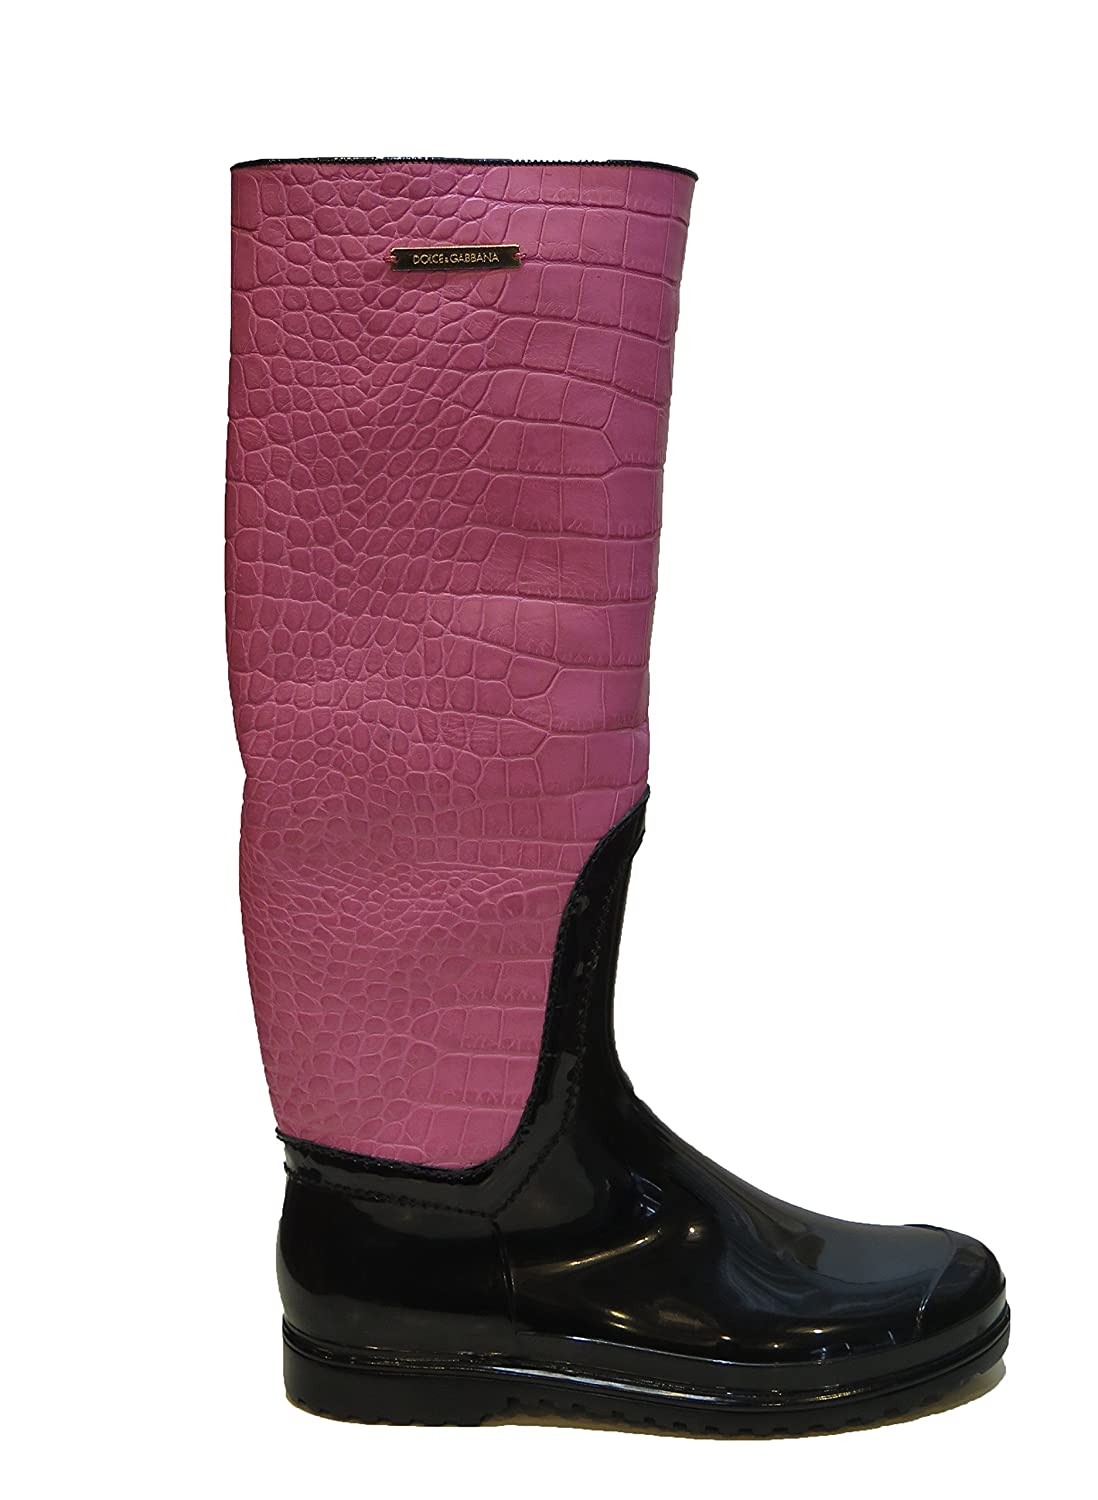 Dolce & Gabbana Italy Woman's Pink Crocodile Leather Rubber Rainboots Boots